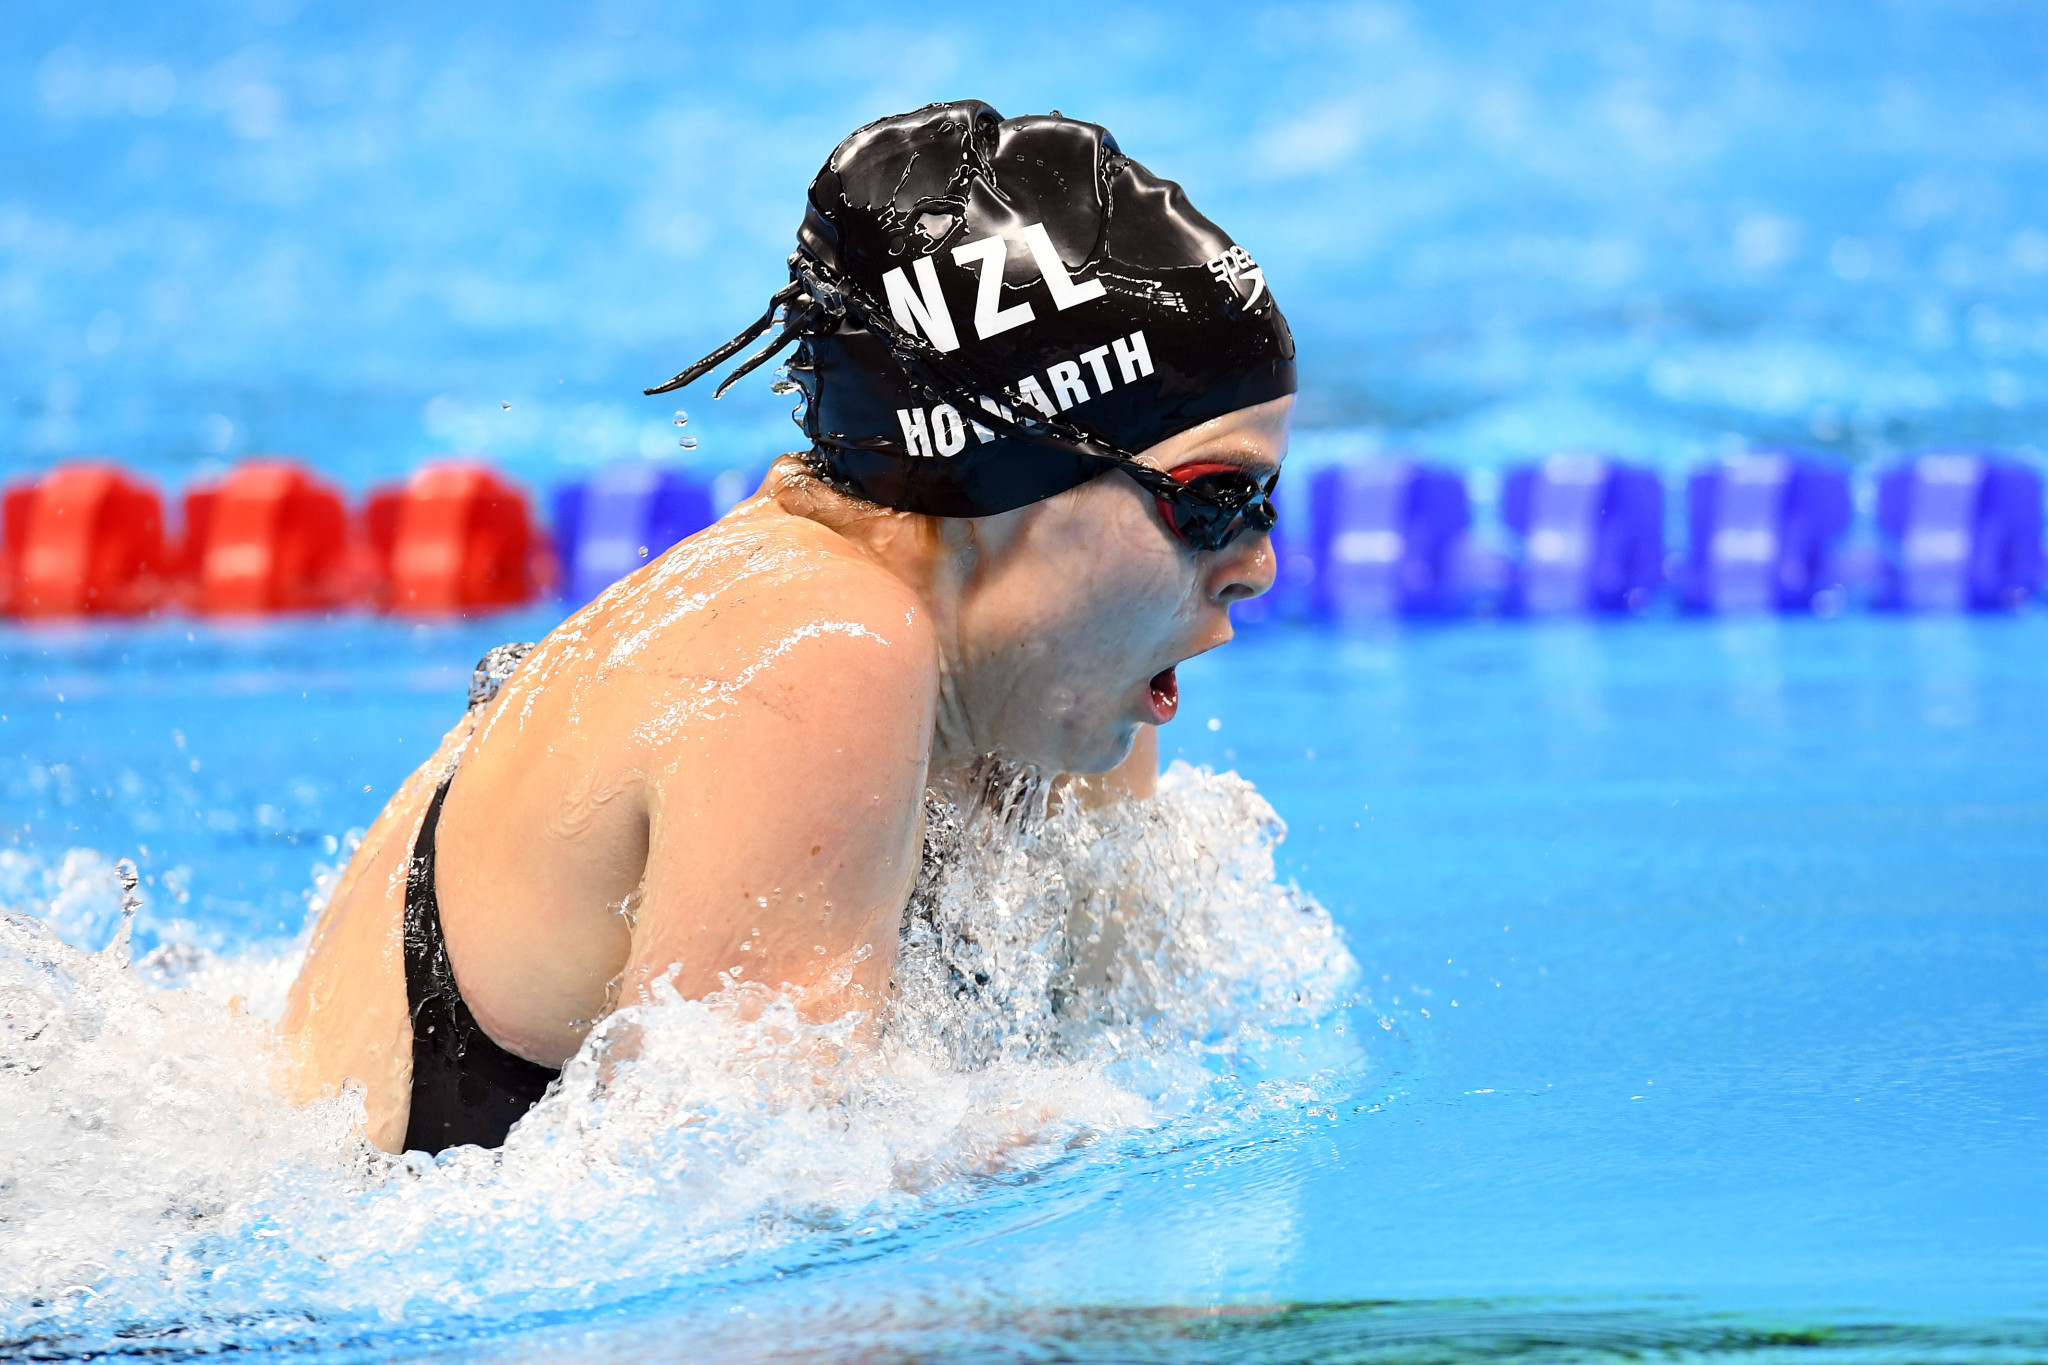 Nikita Howarth won two medals at the Rio 2016 Paralympic Games, including gold in the women's 200m medley SM7 event ©Getty Images